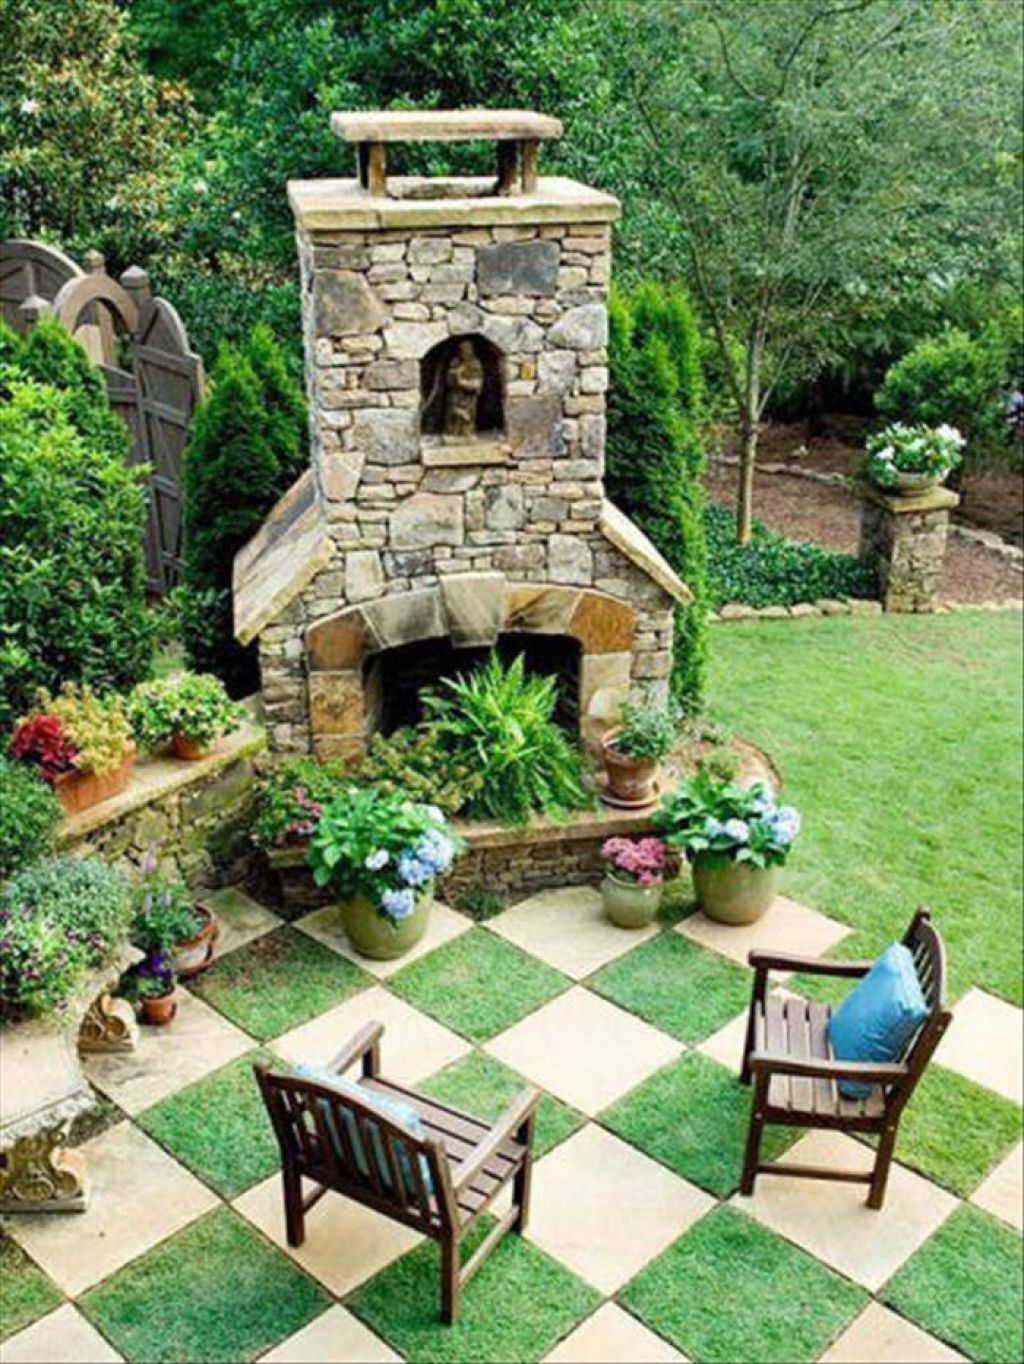 Outdoor Patio Landscaping Ideas | Fireplace outdoor, Stone ...